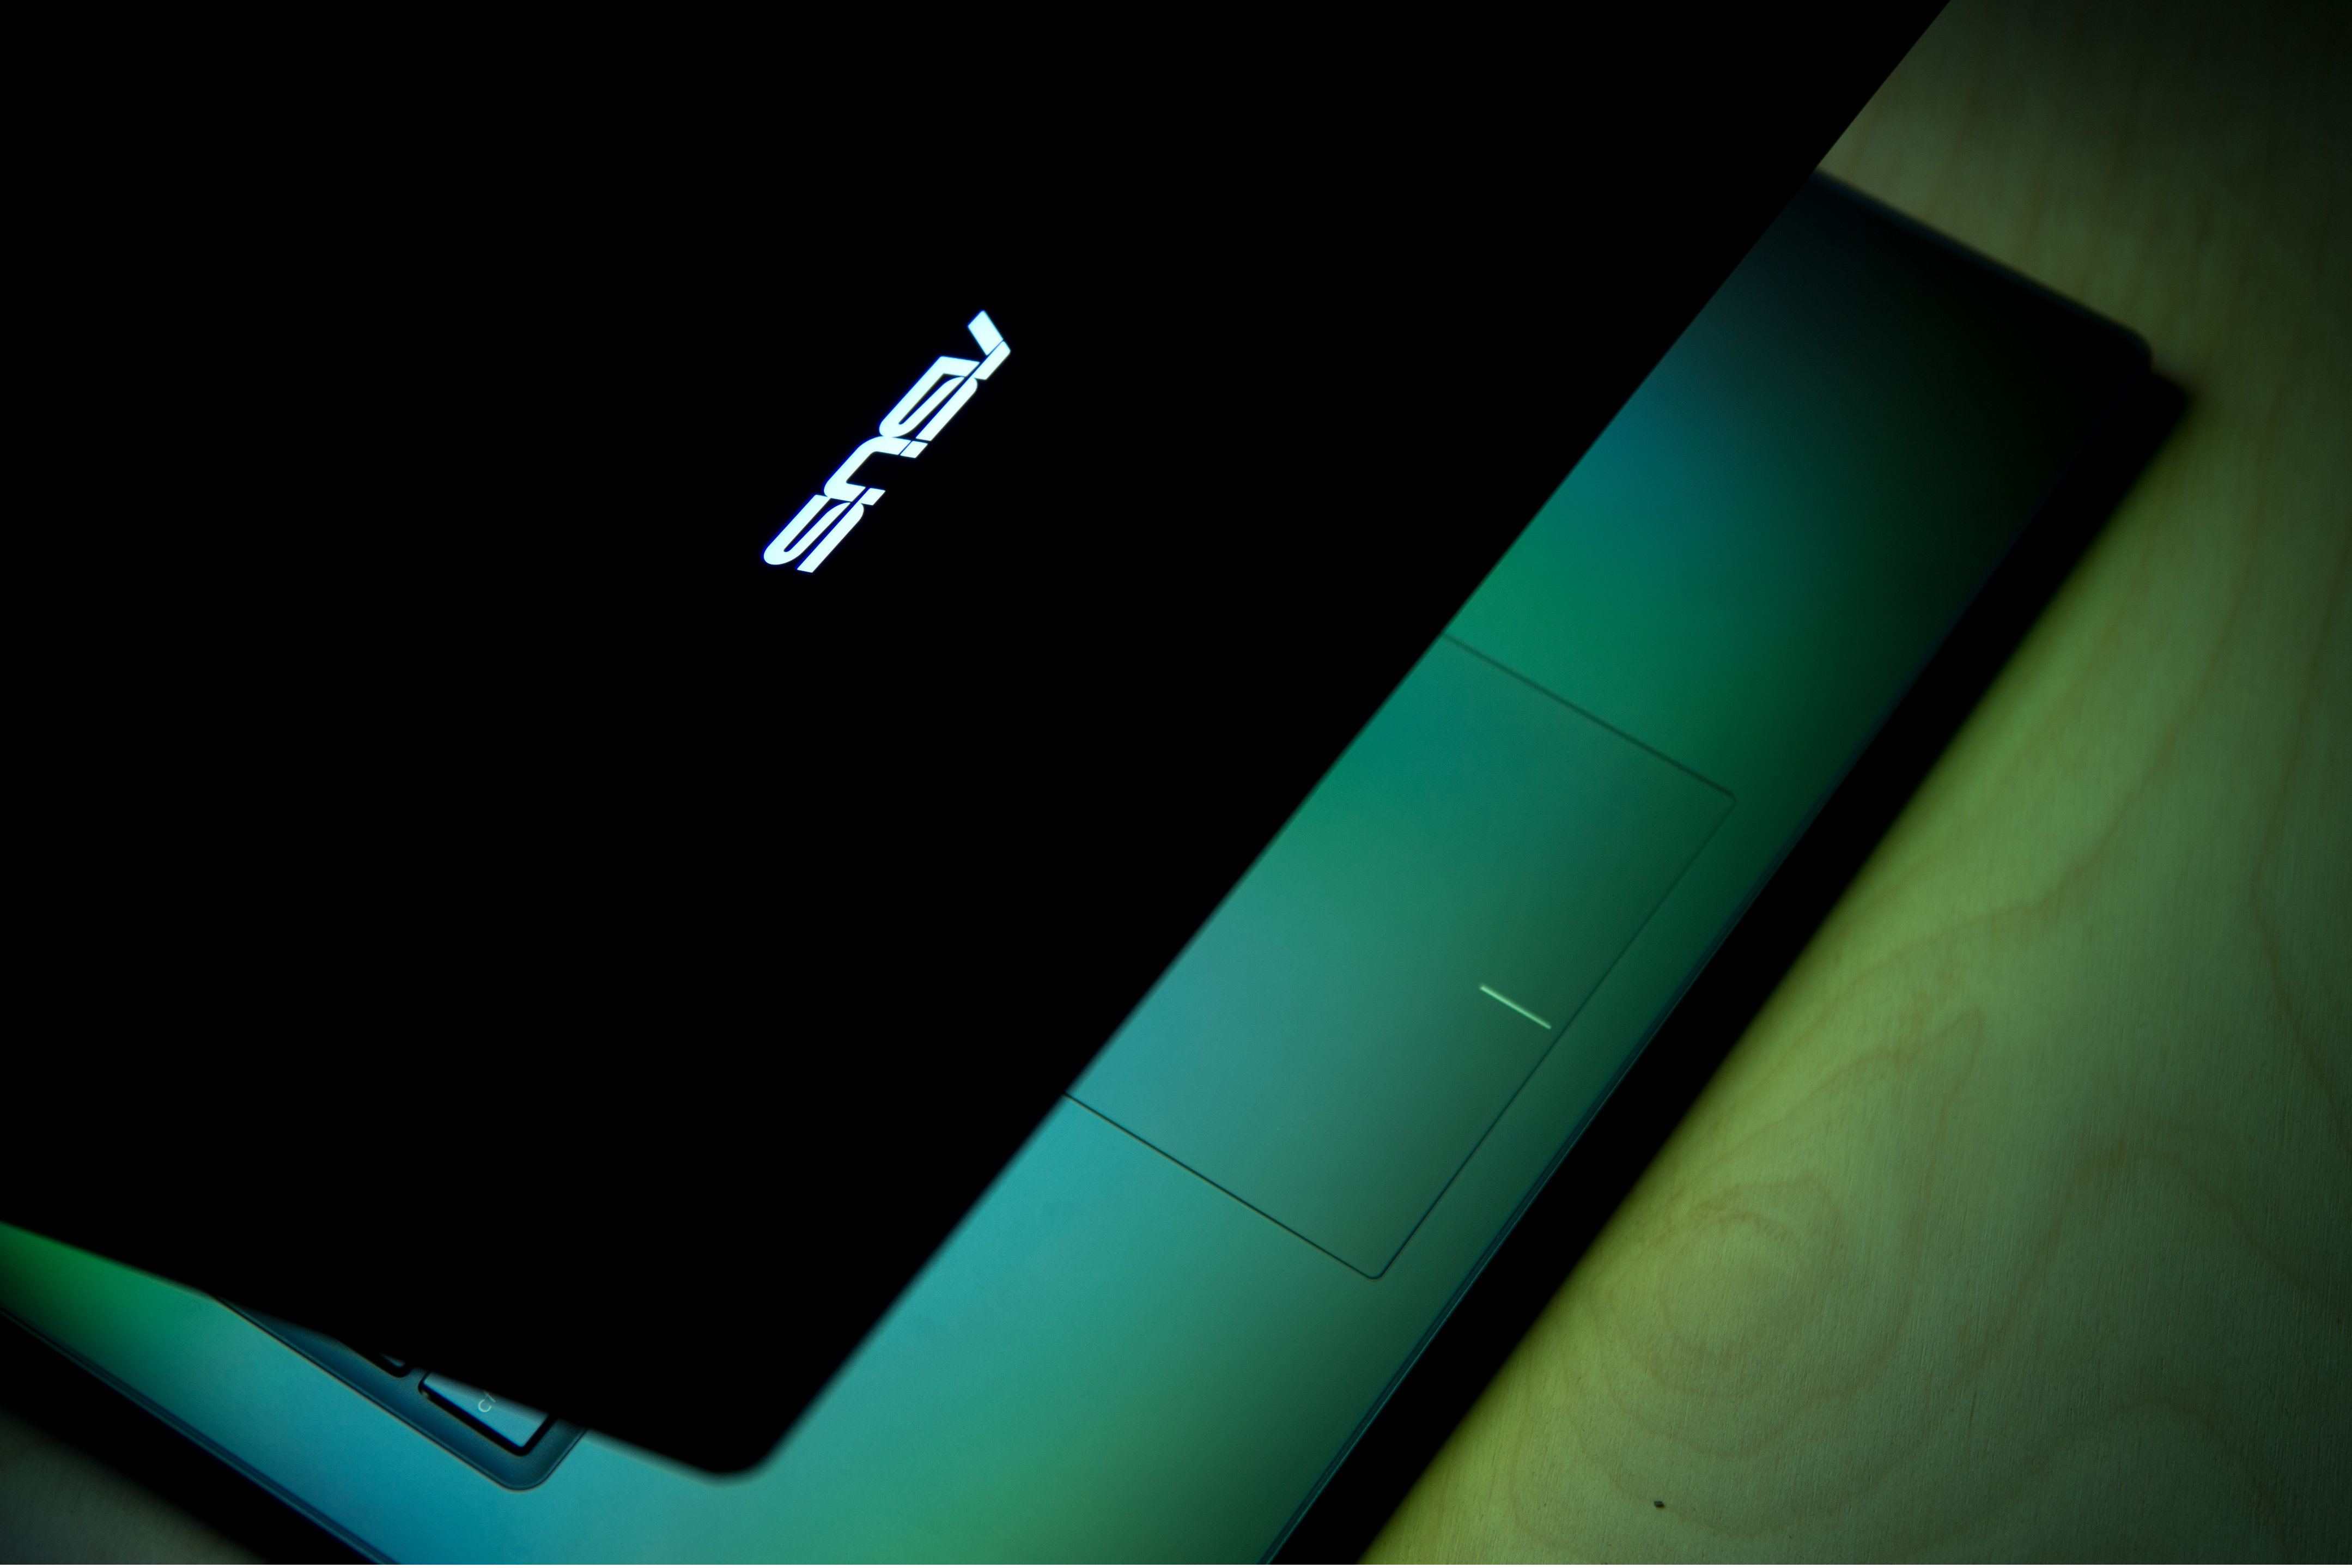 A close-up picture of the Asus UX301L.